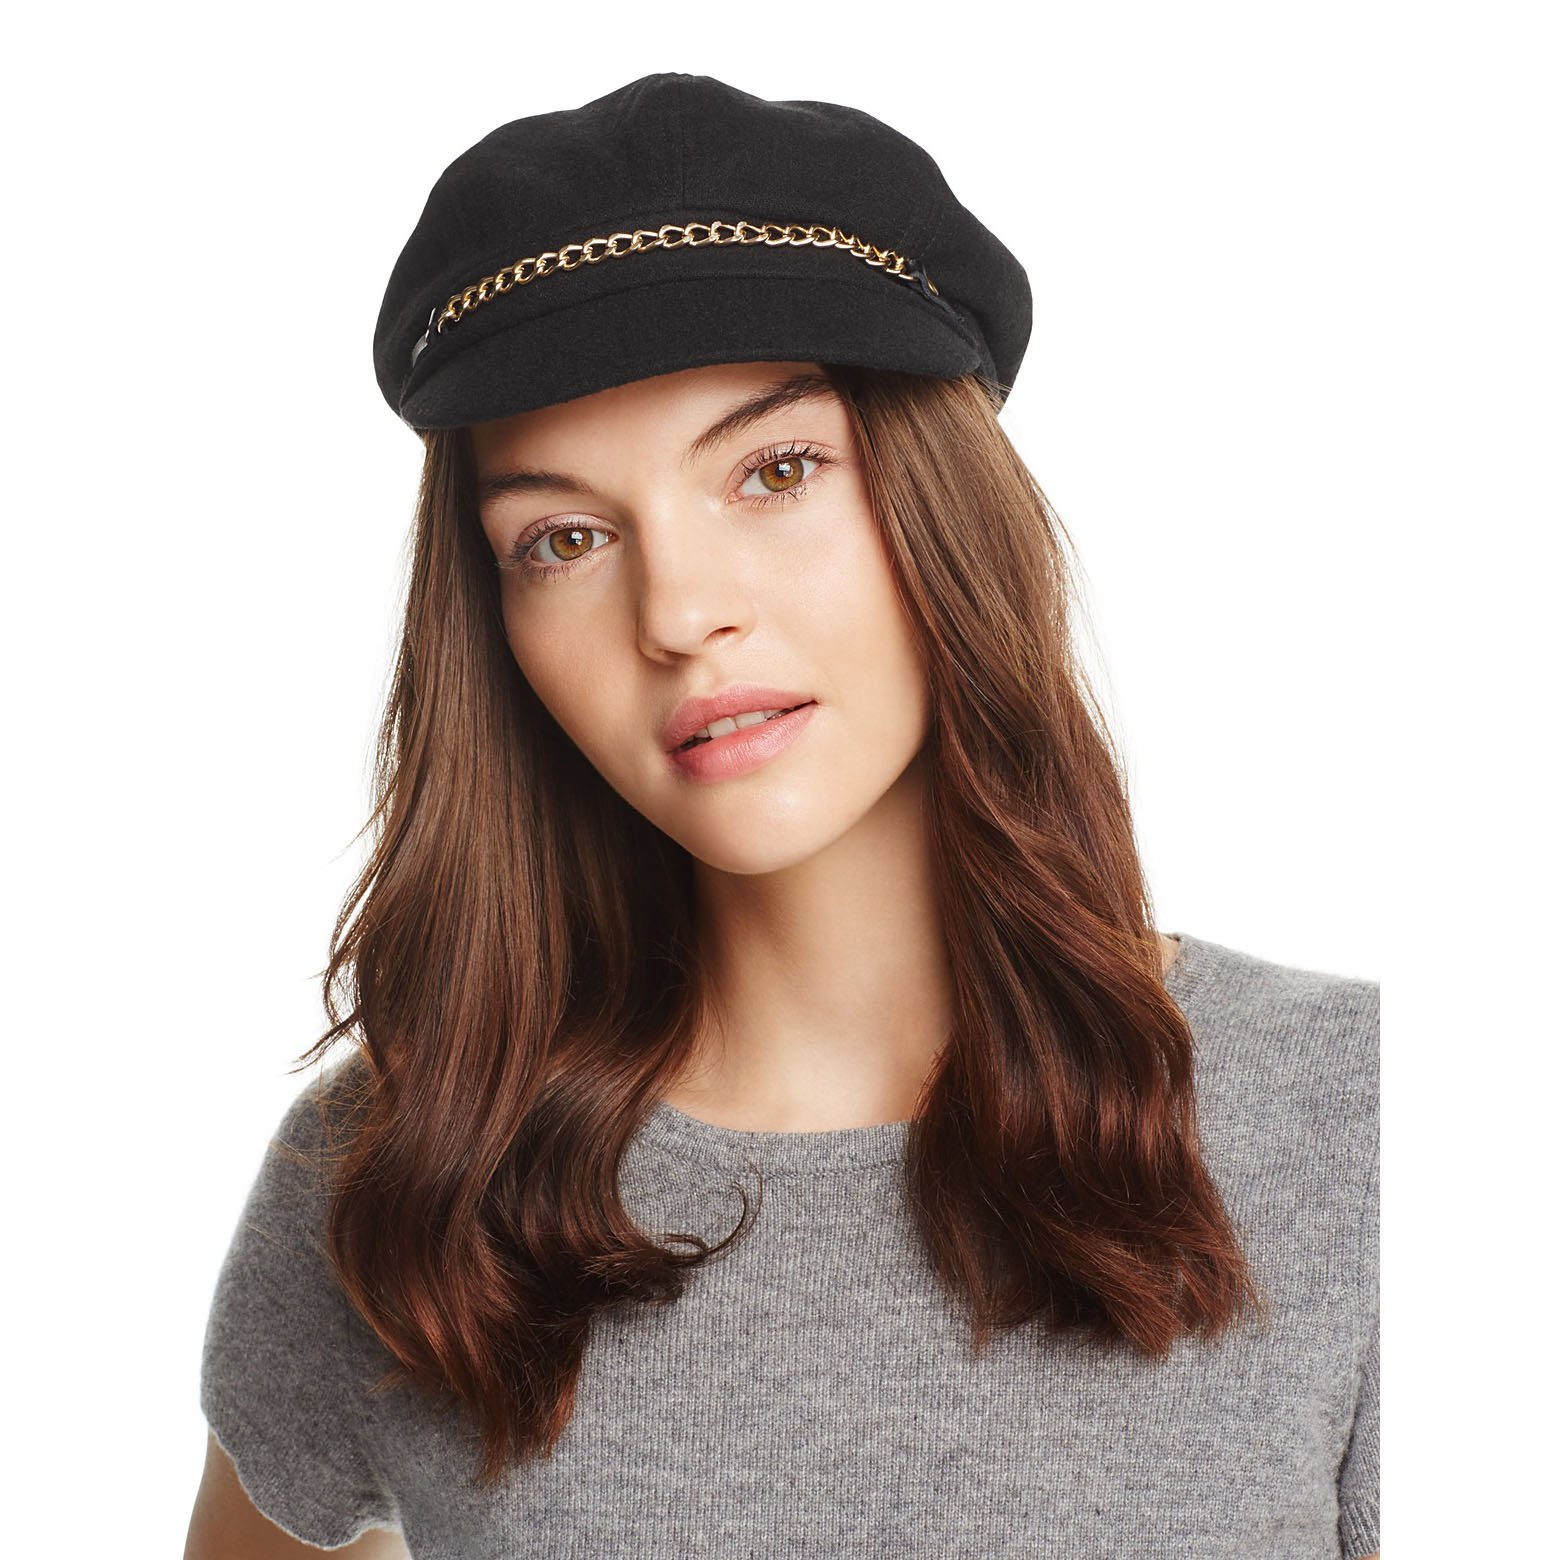 August Hat Company newsboy